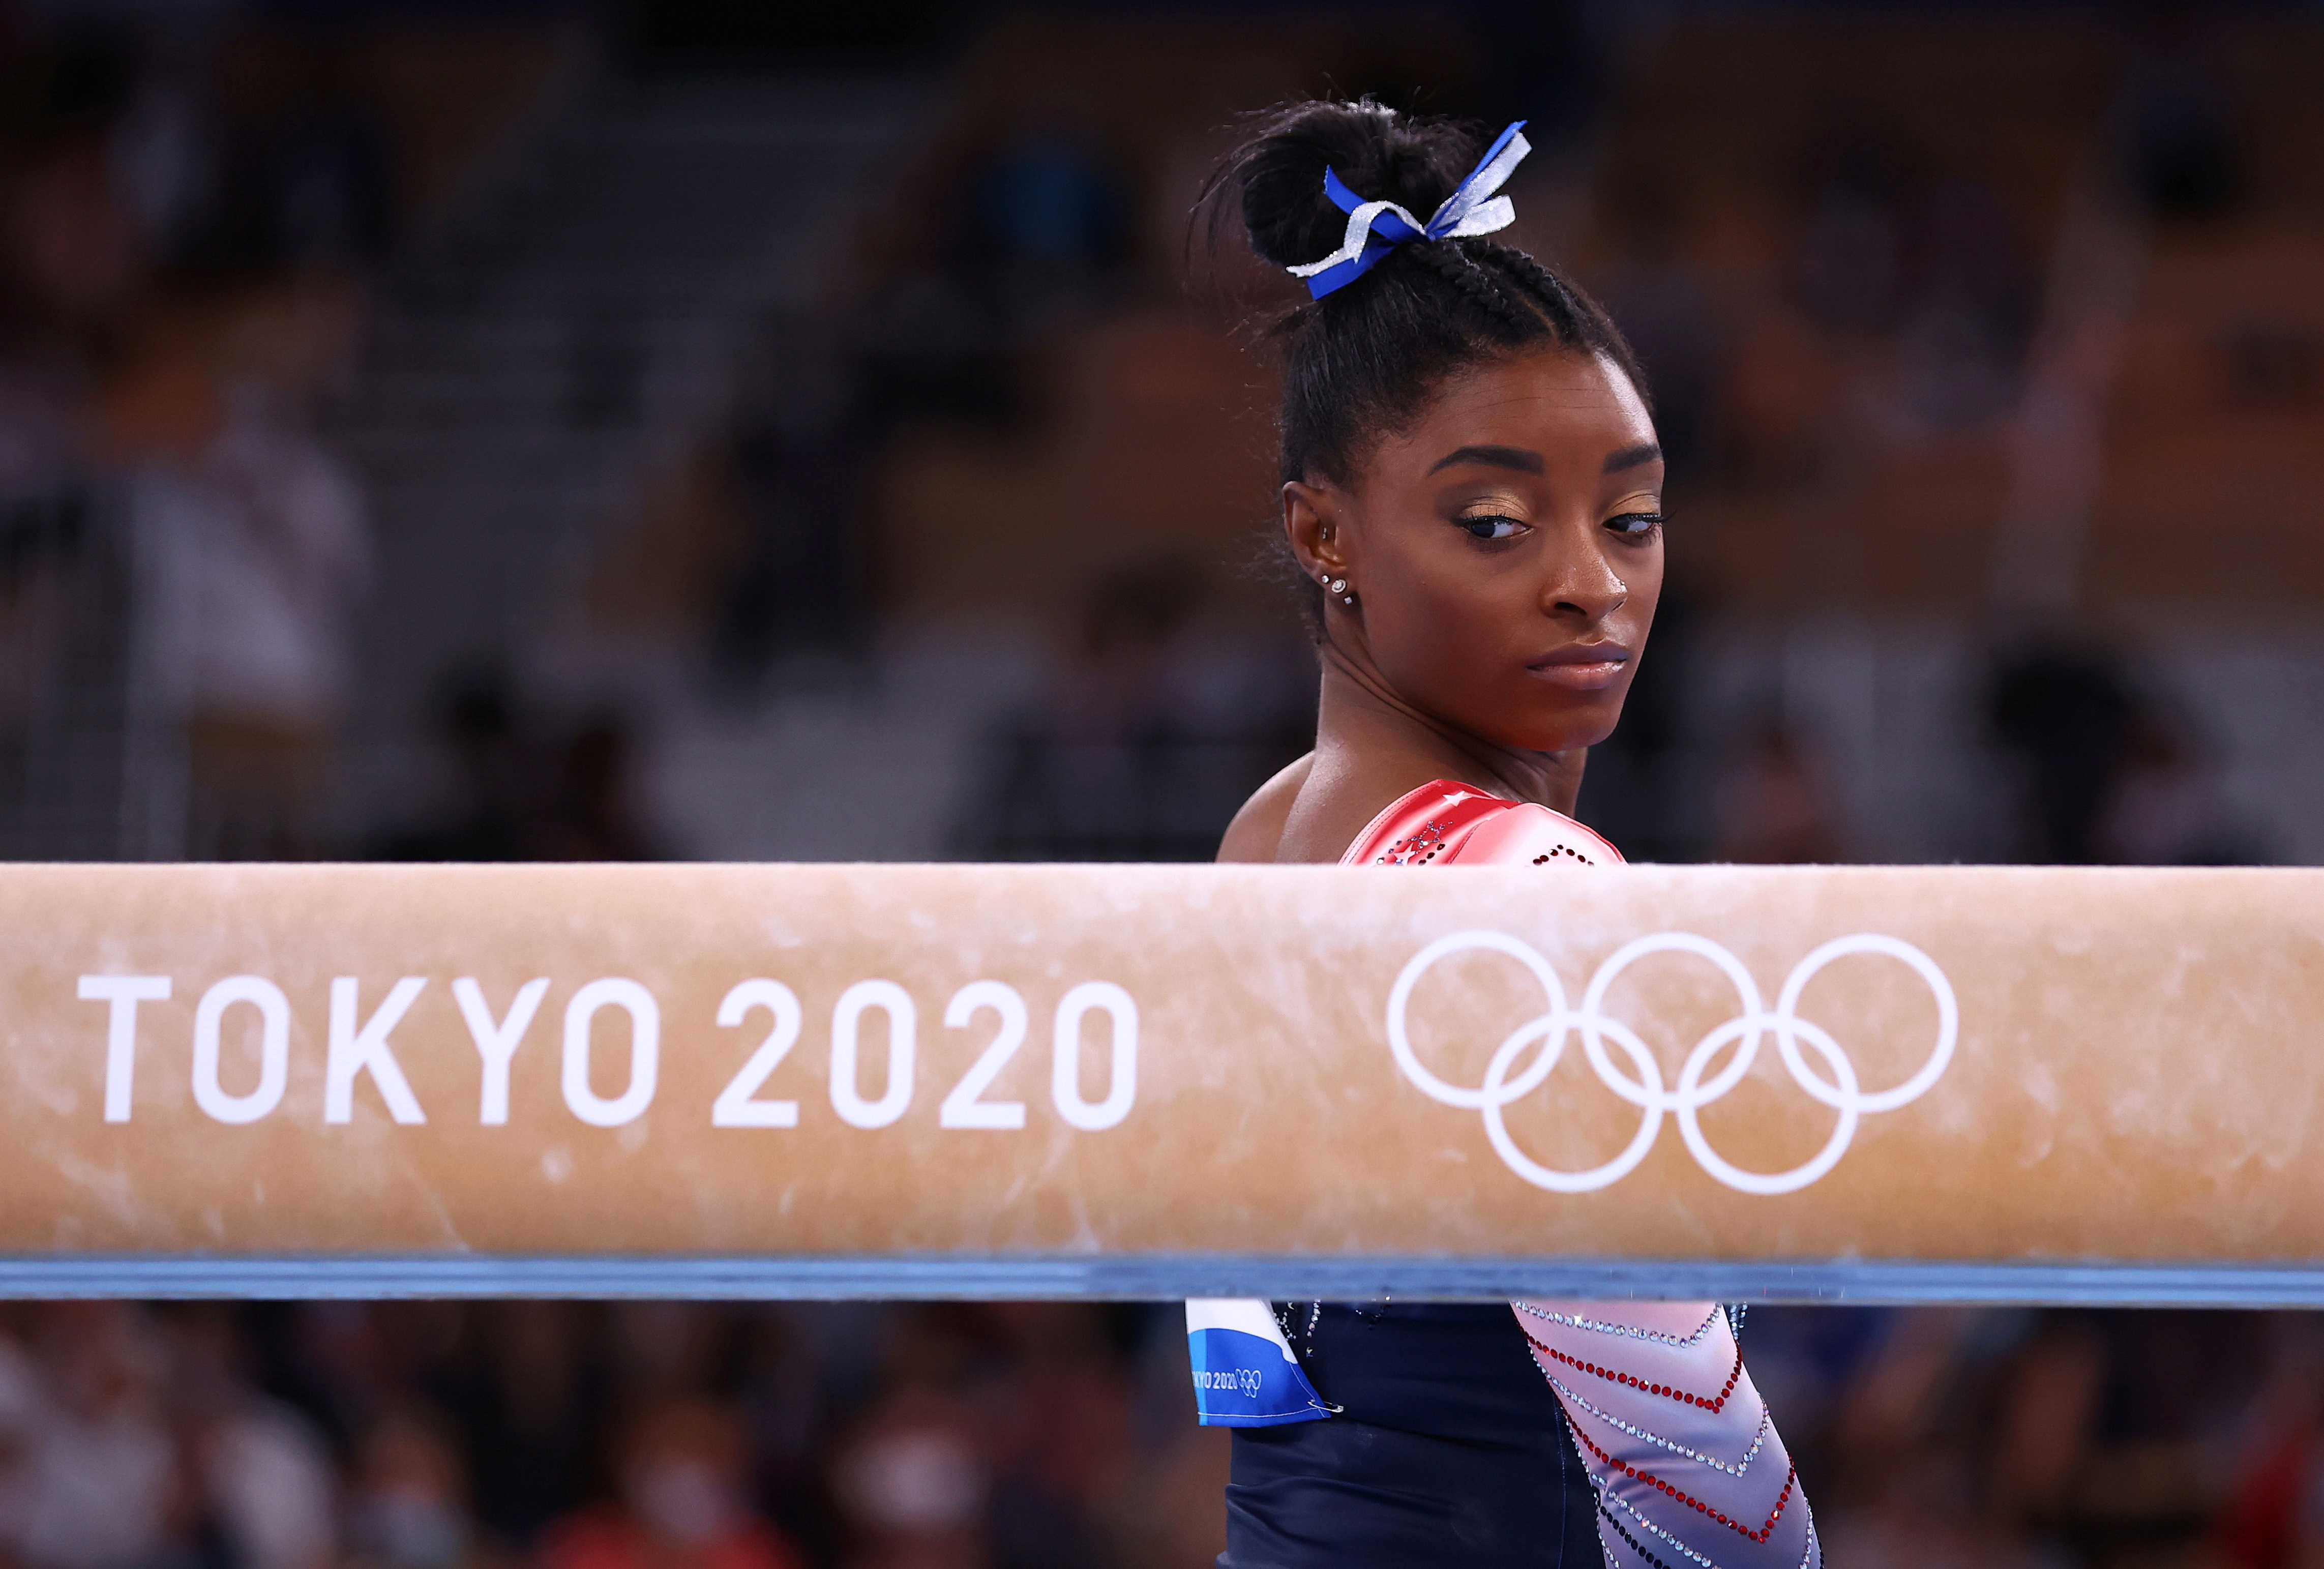 Simone Biles of the United States before competing REUTERS/Mike Blake